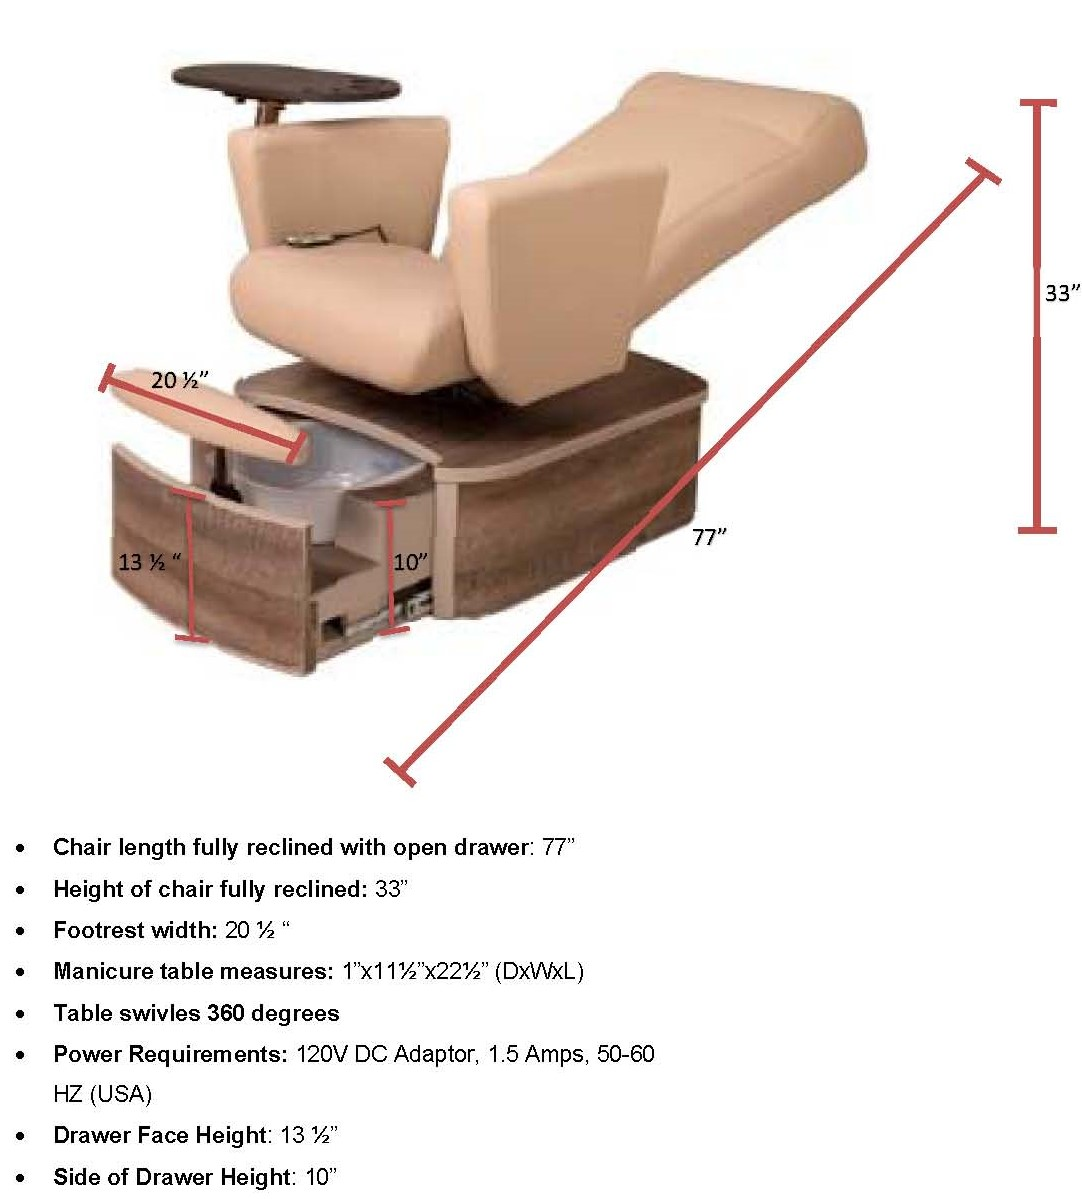 element-chair-specifications-by-belava.jpg